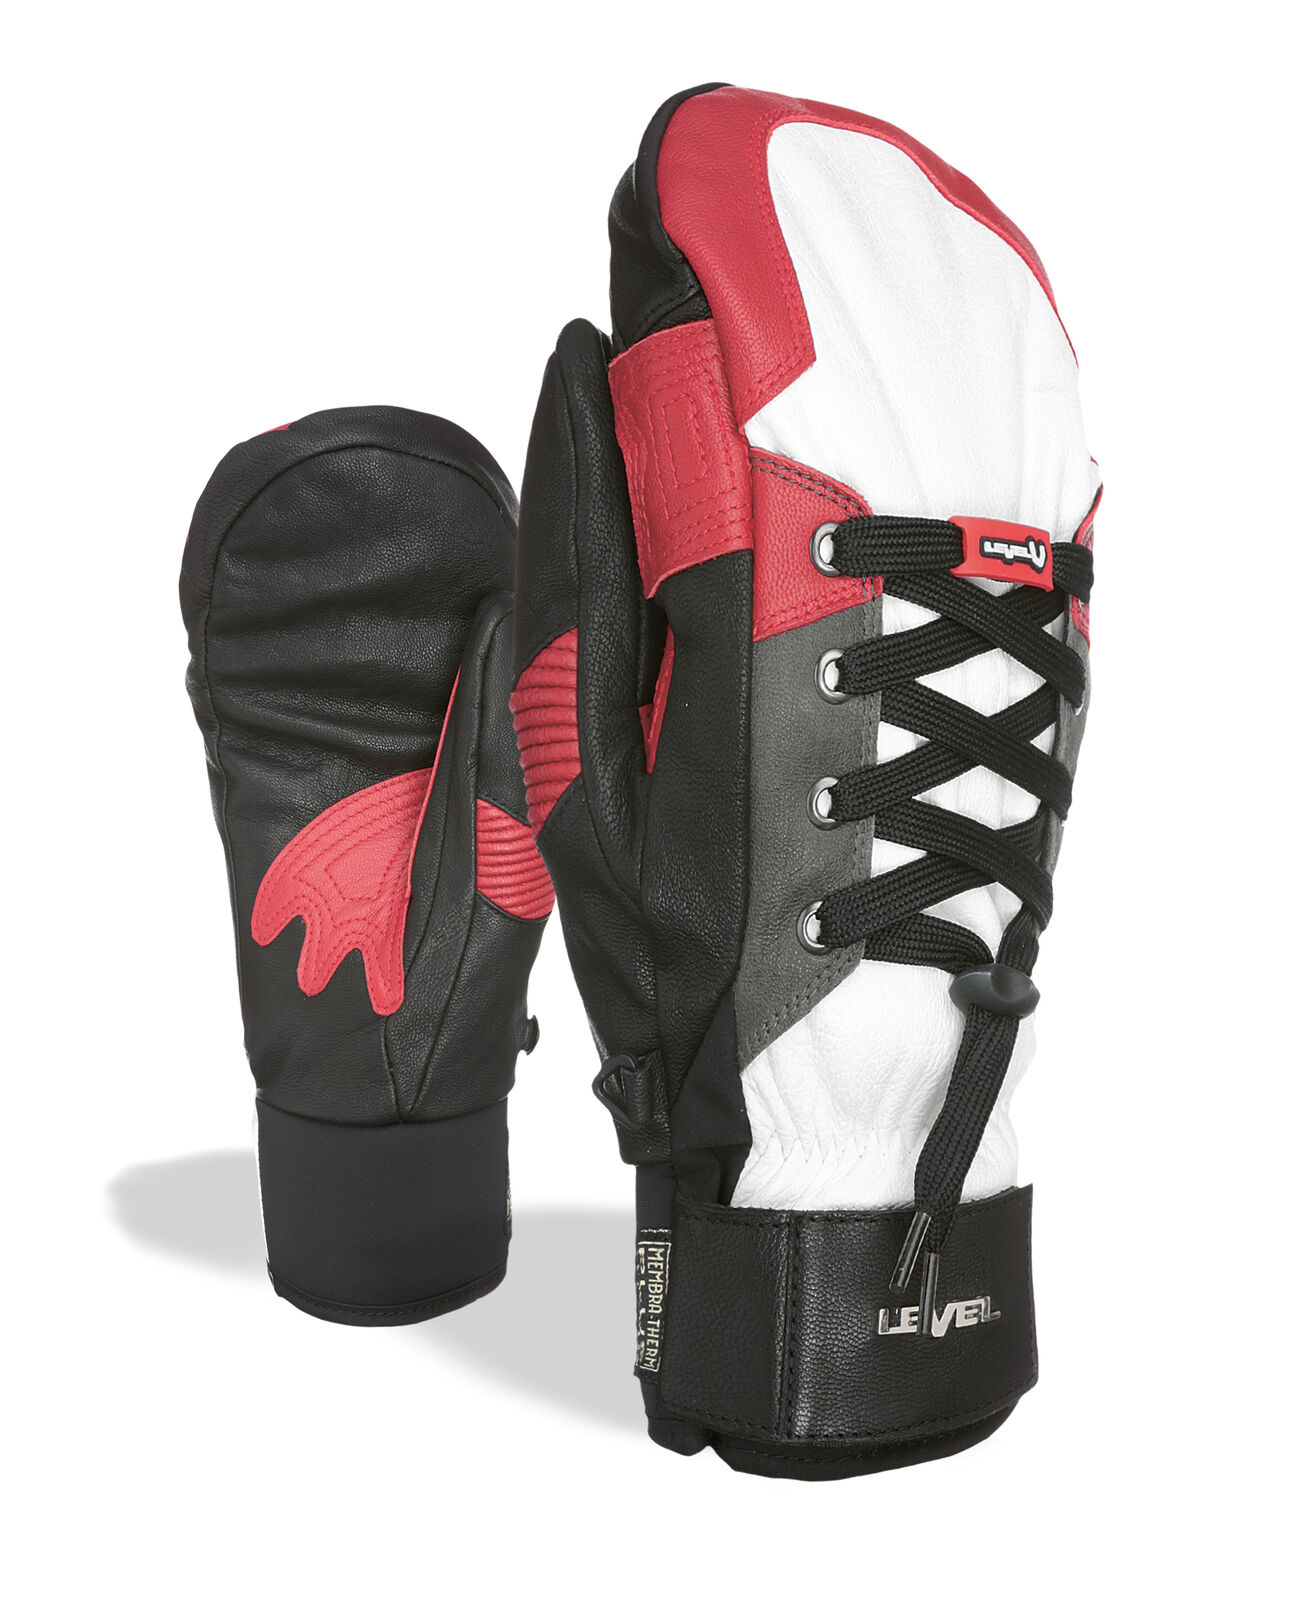 Level Guantes Rexford Deportiva color whiteo Impermeable Transpirable